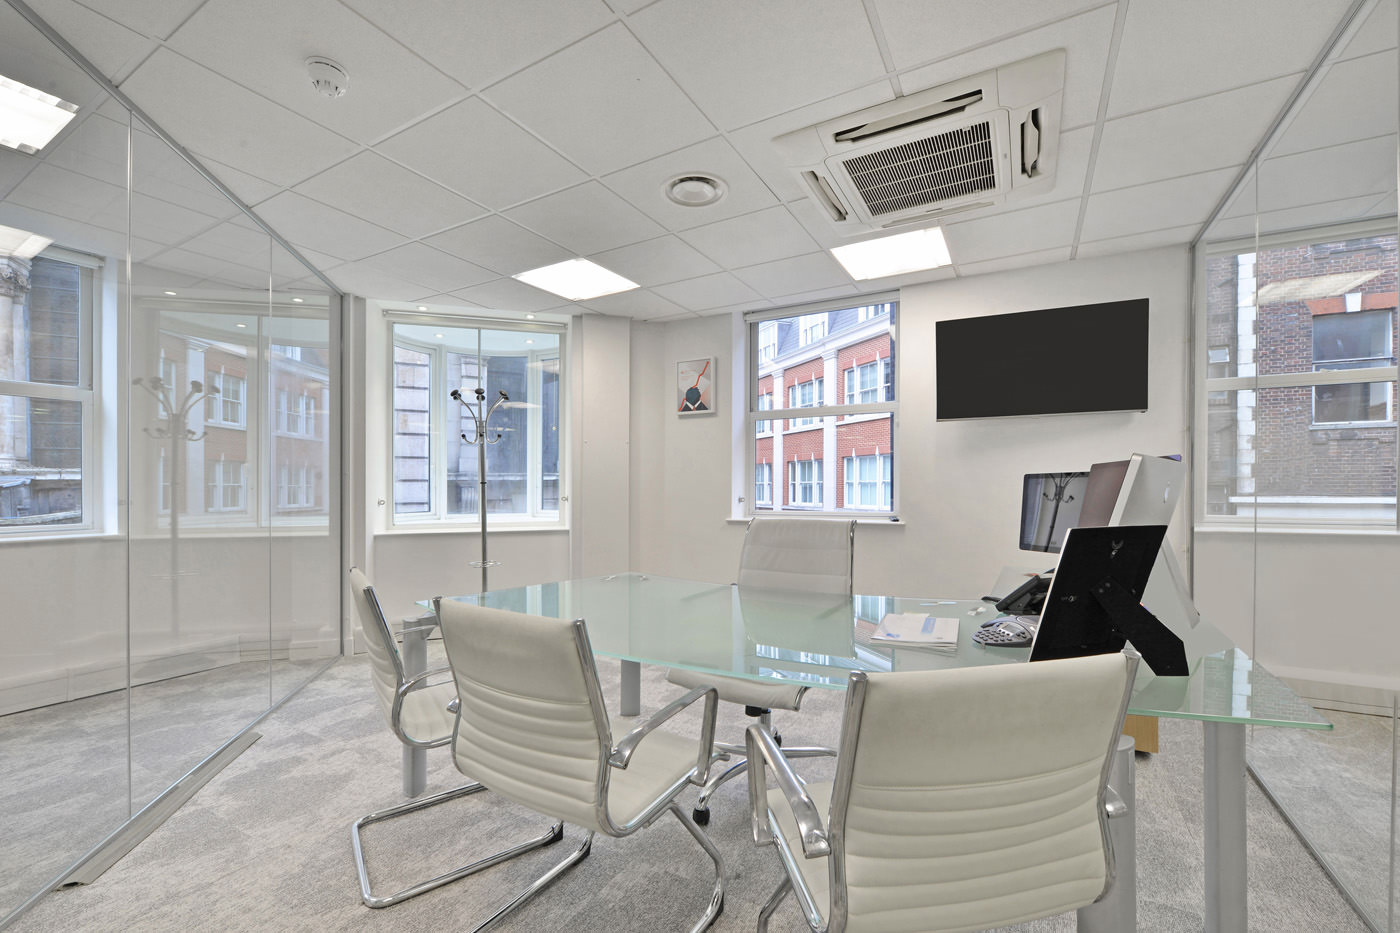 Maddox Street Office Fit Out Mayfair Small Meeting Room Close Up